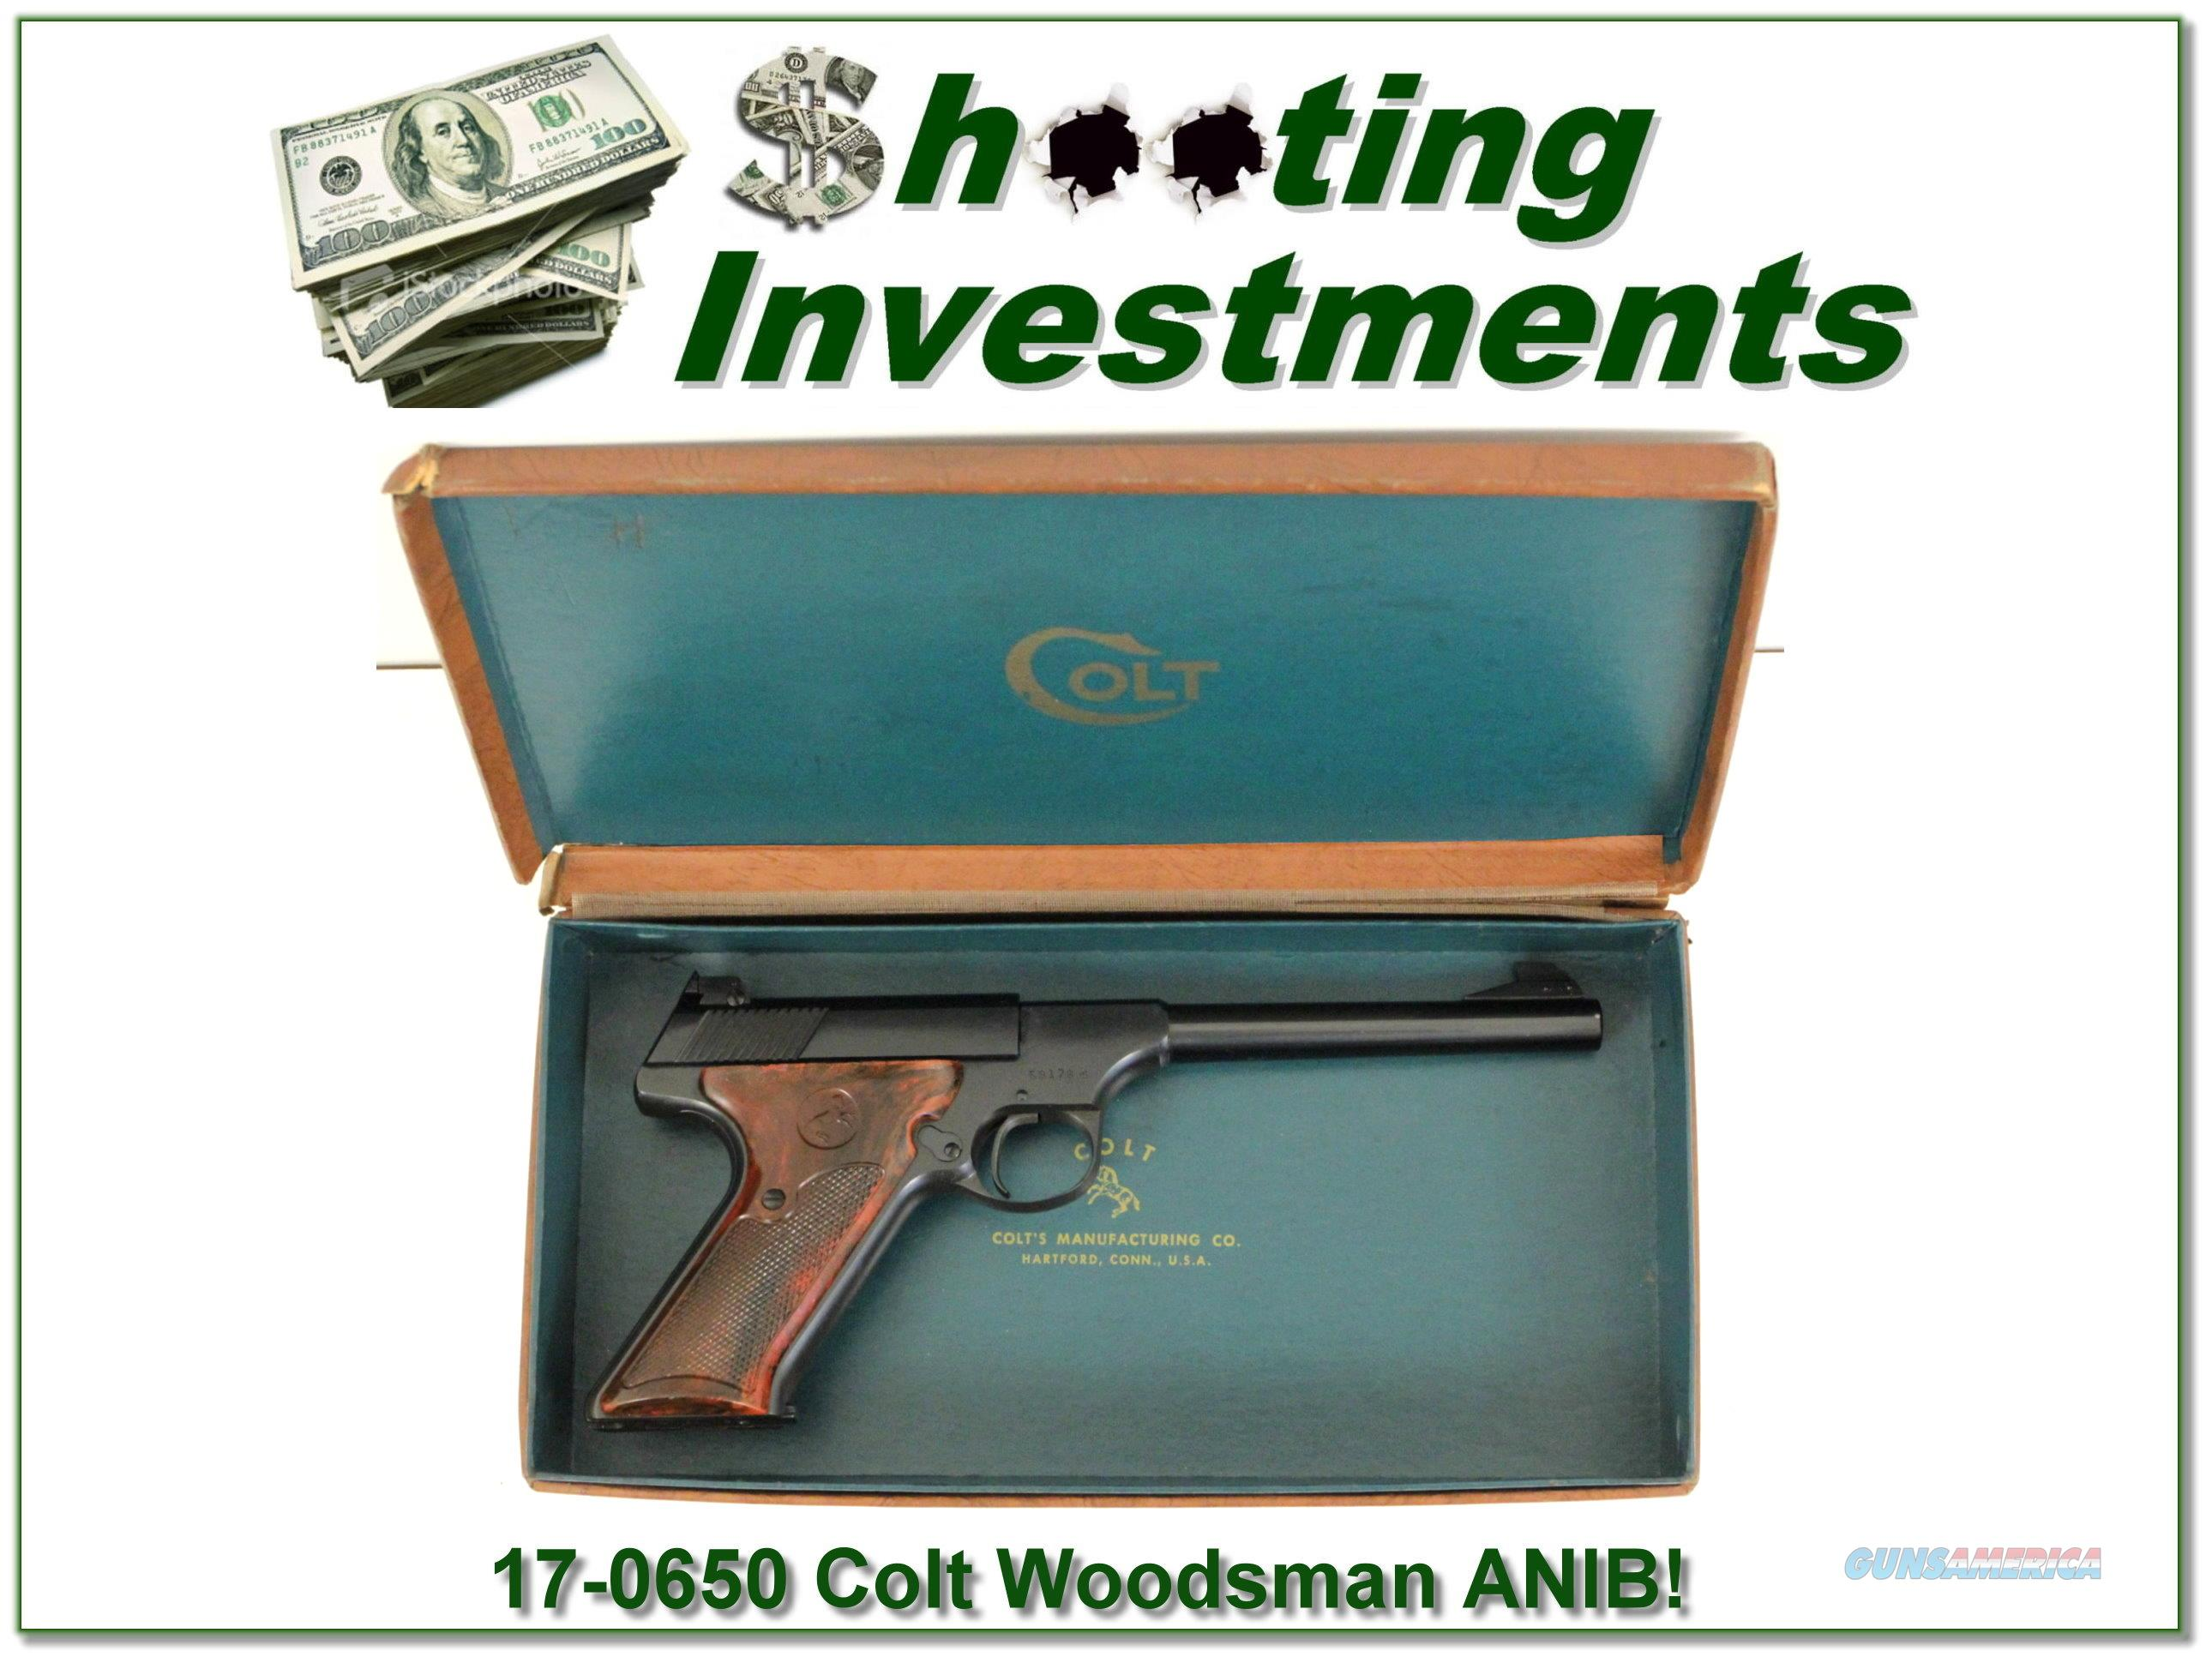 Colt Woodsman 1949 Collector Condition in box!  Guns > Pistols > Colt Automatic Pistols (22 Cal.)